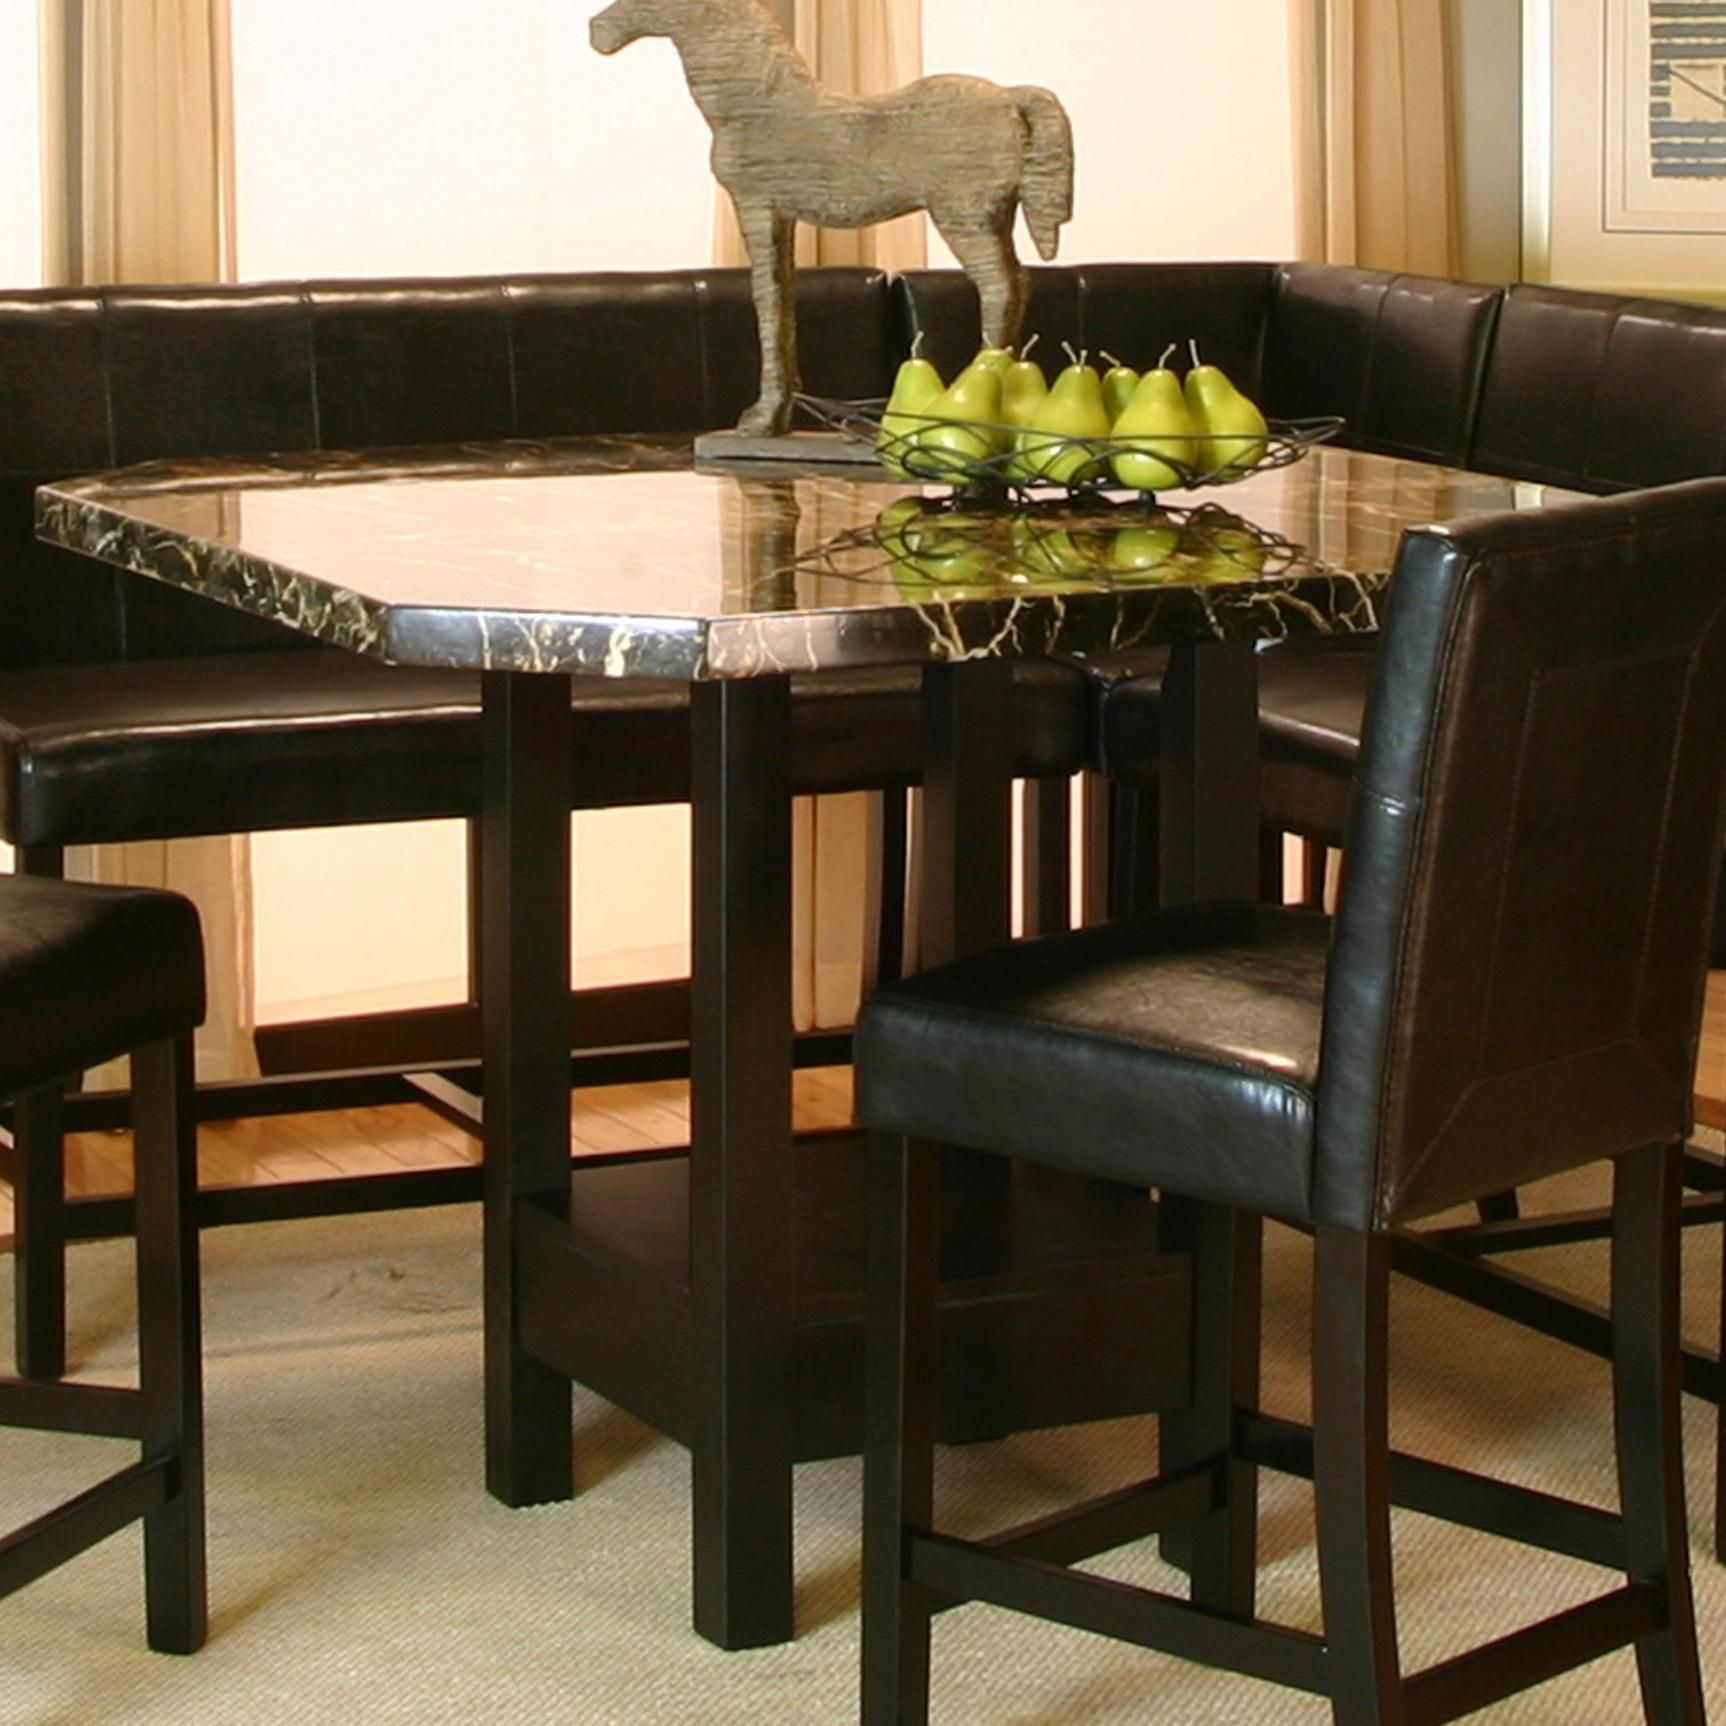 Dining Room Bar Table: Chatham Square Clipped Corner Pub Table W/ Faux Marble Top